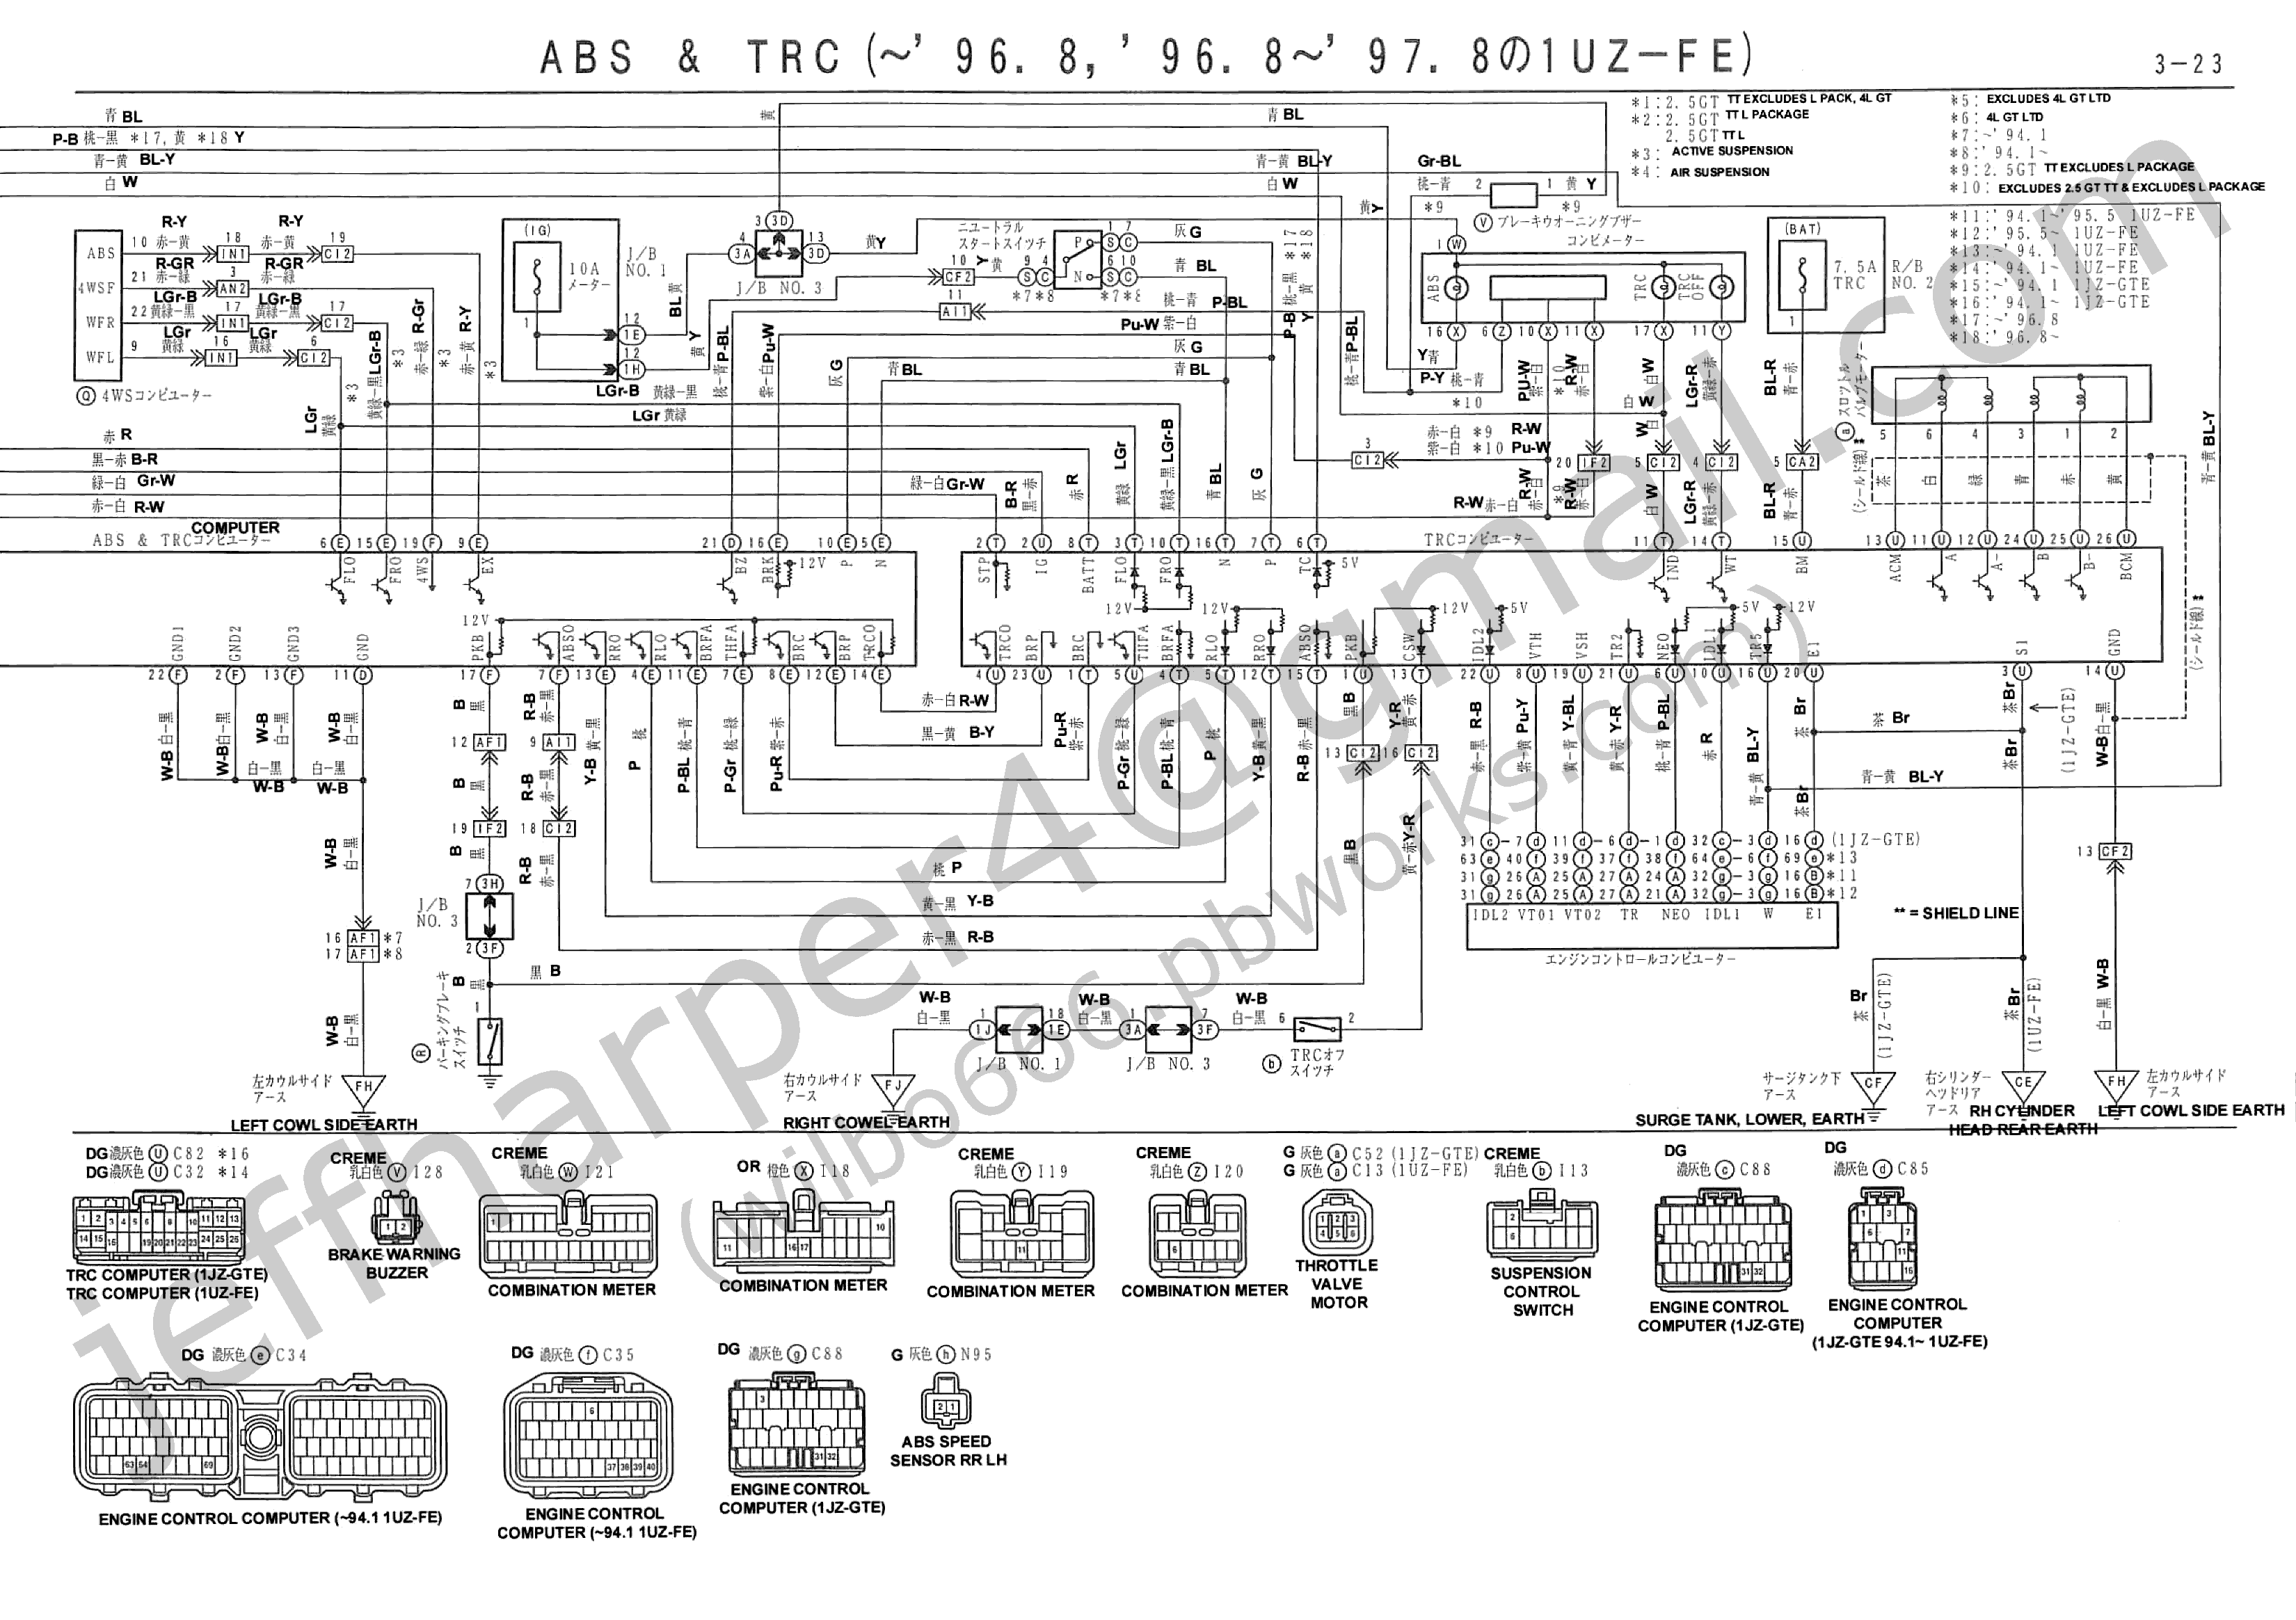 Awesome e46 abs wiring diagram gallery wiring diagram ideas bmw e46 320d wiring diagram pdf 31 wiring diagram images wiring asfbconference2016 Choice Image